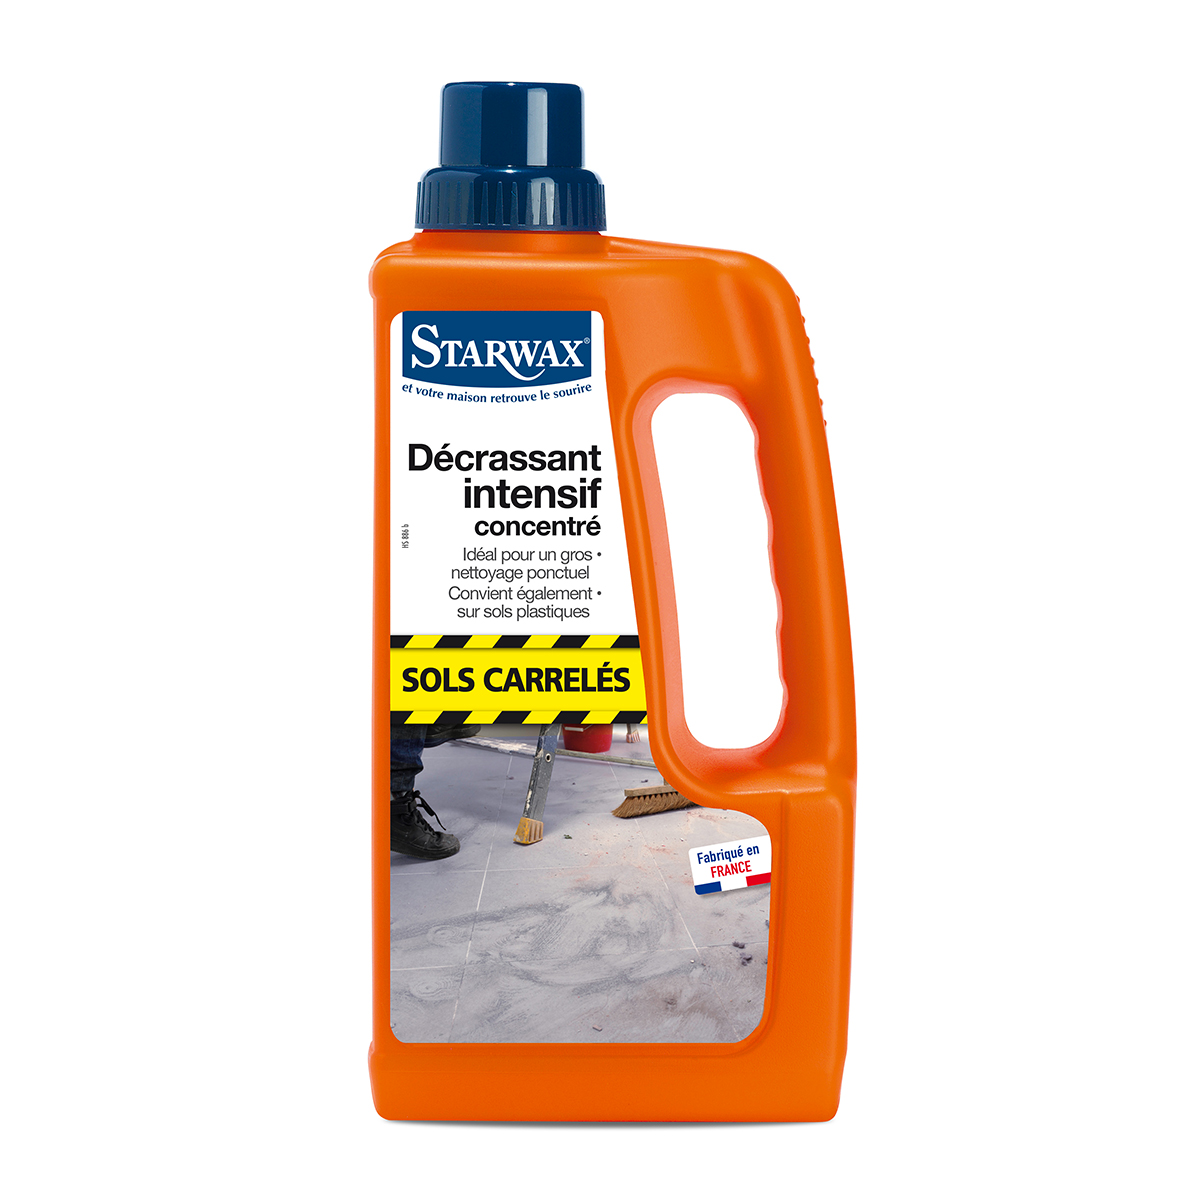 Heavy-duty cleaner – Starwax